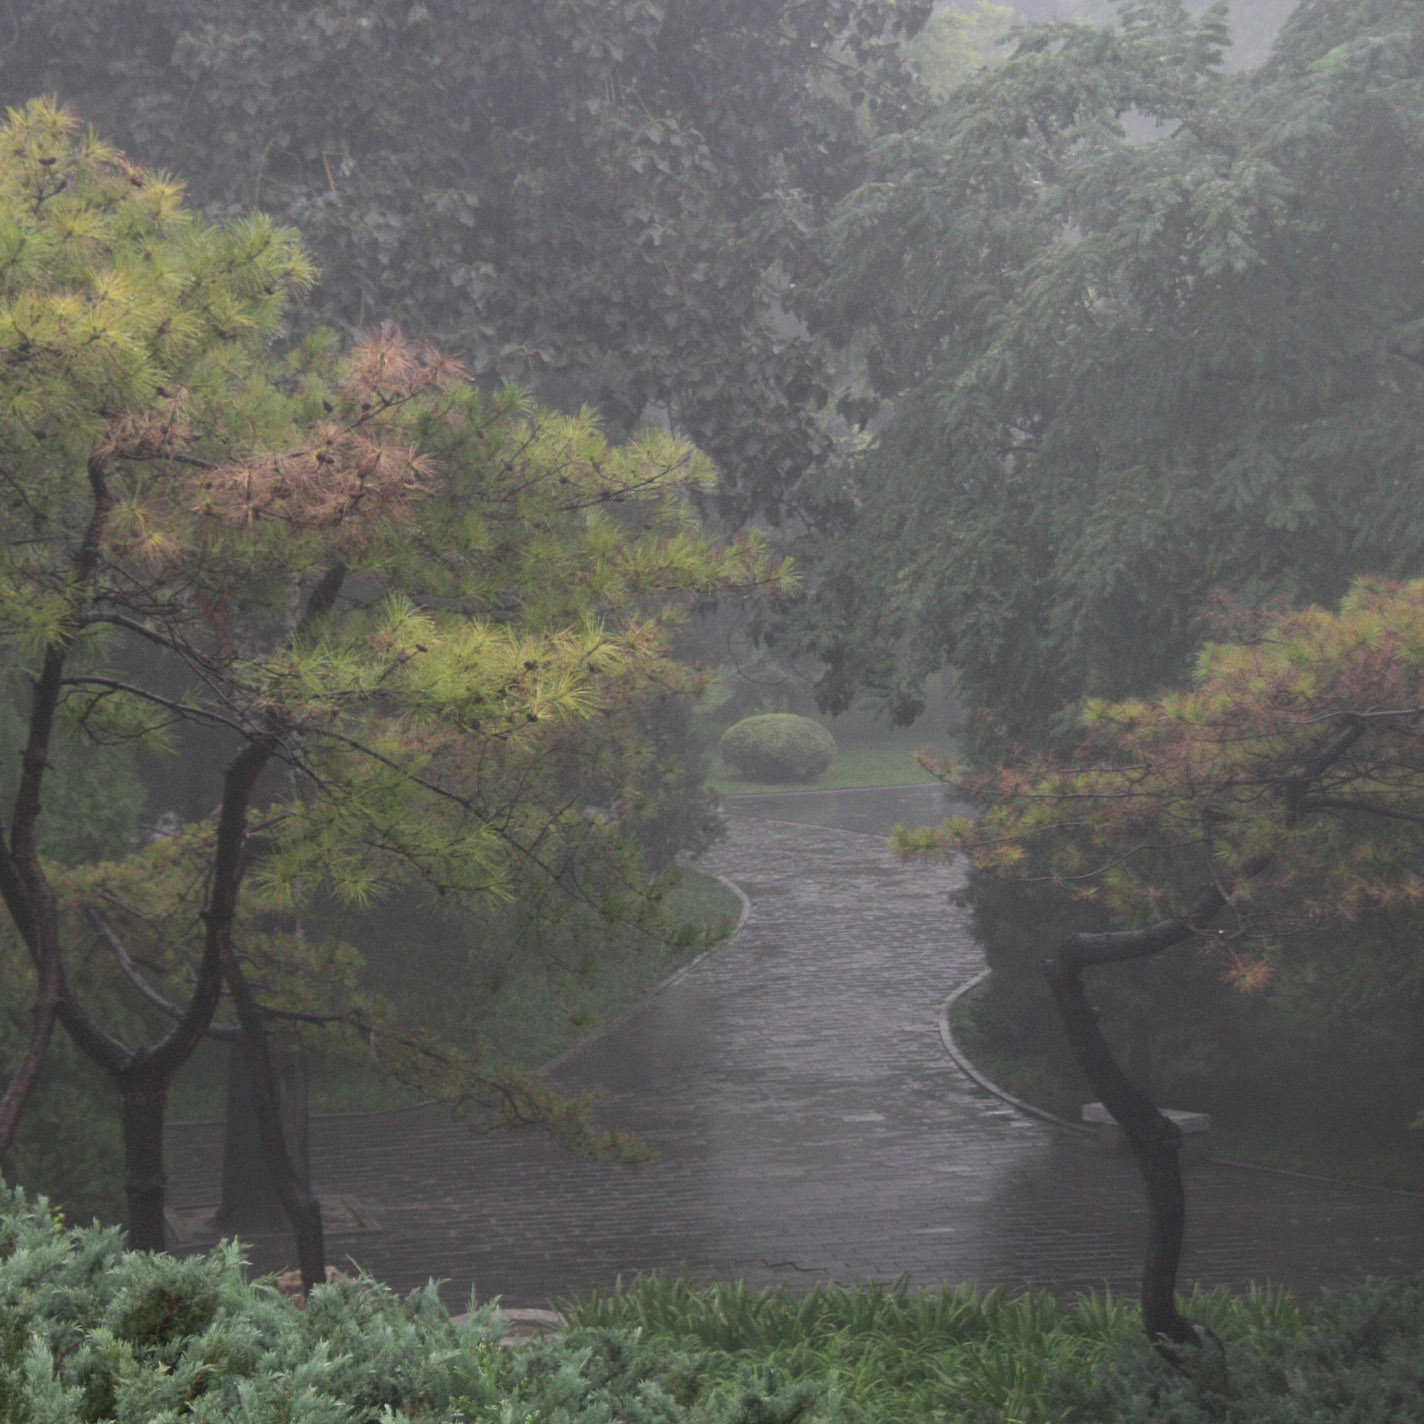 Ritan_Park_1.jpg - Ritan is a park in Beijing: It was raining...